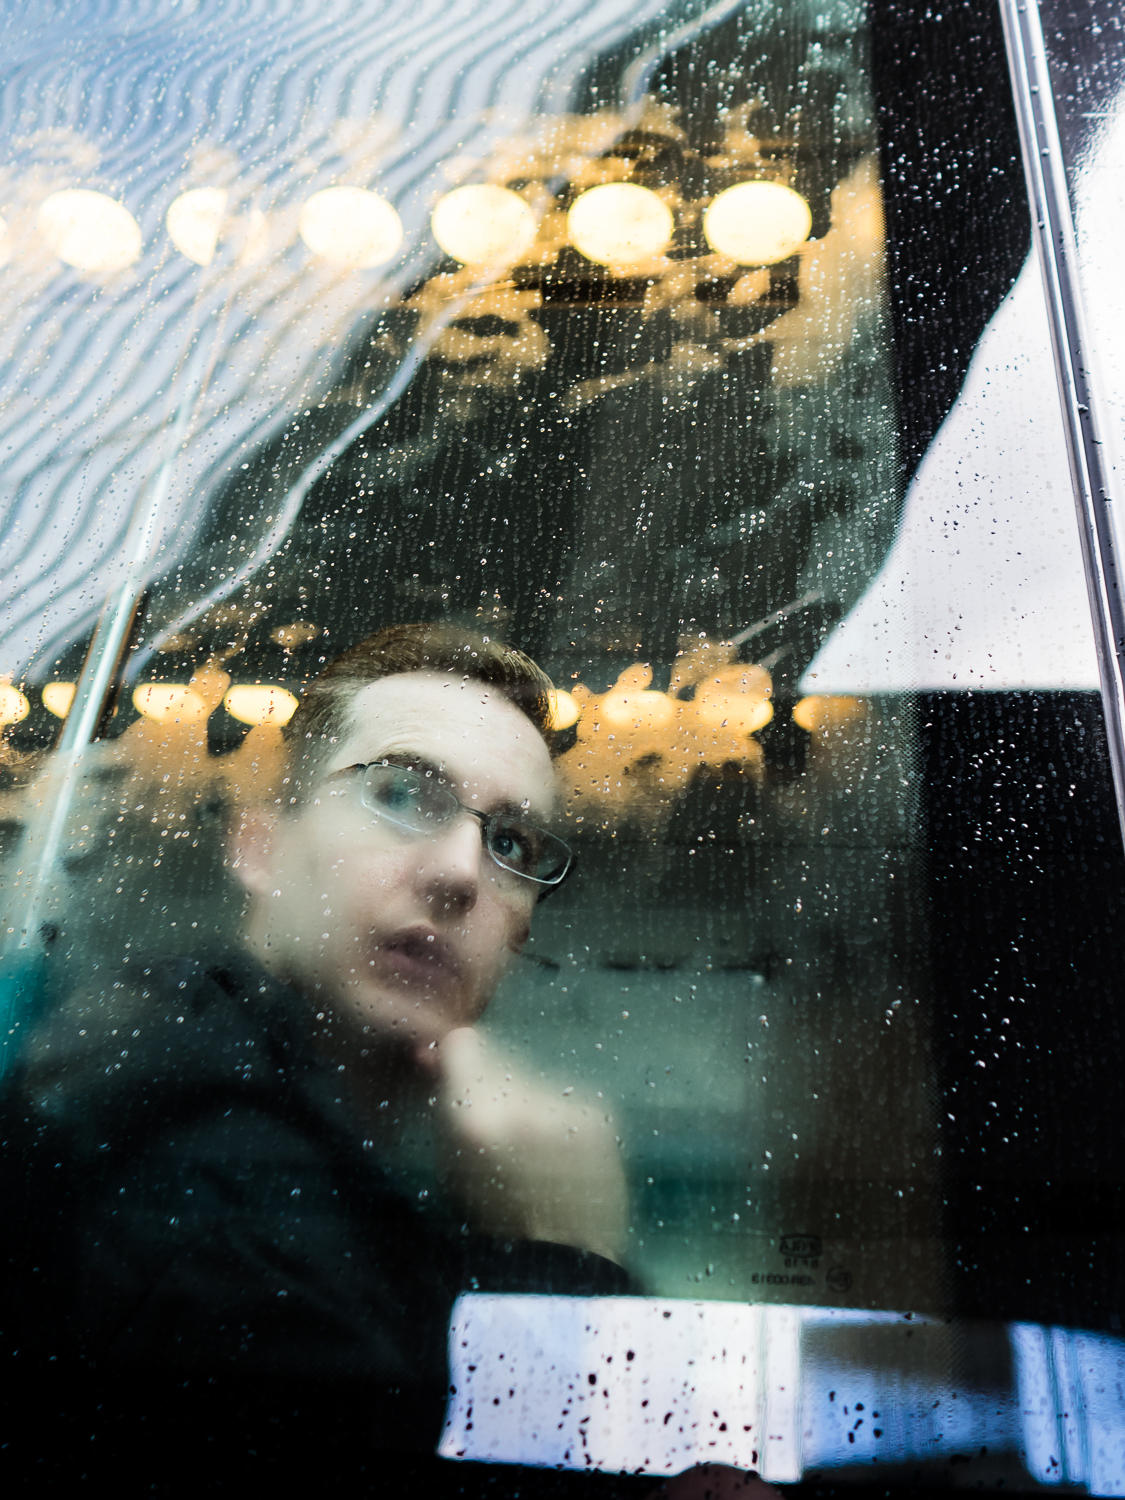 RotTERDAM november 2016  Shot taken at the Central Station.  I always join the participants of my street photography workshops to shoot through glass barriers. In this case I was happy to see this guy behind a steamy window of the tram. Part of my    Glassy    series.  Shot with Olympus OMD5 Mark 2 and Olympus 17mm f/1.8